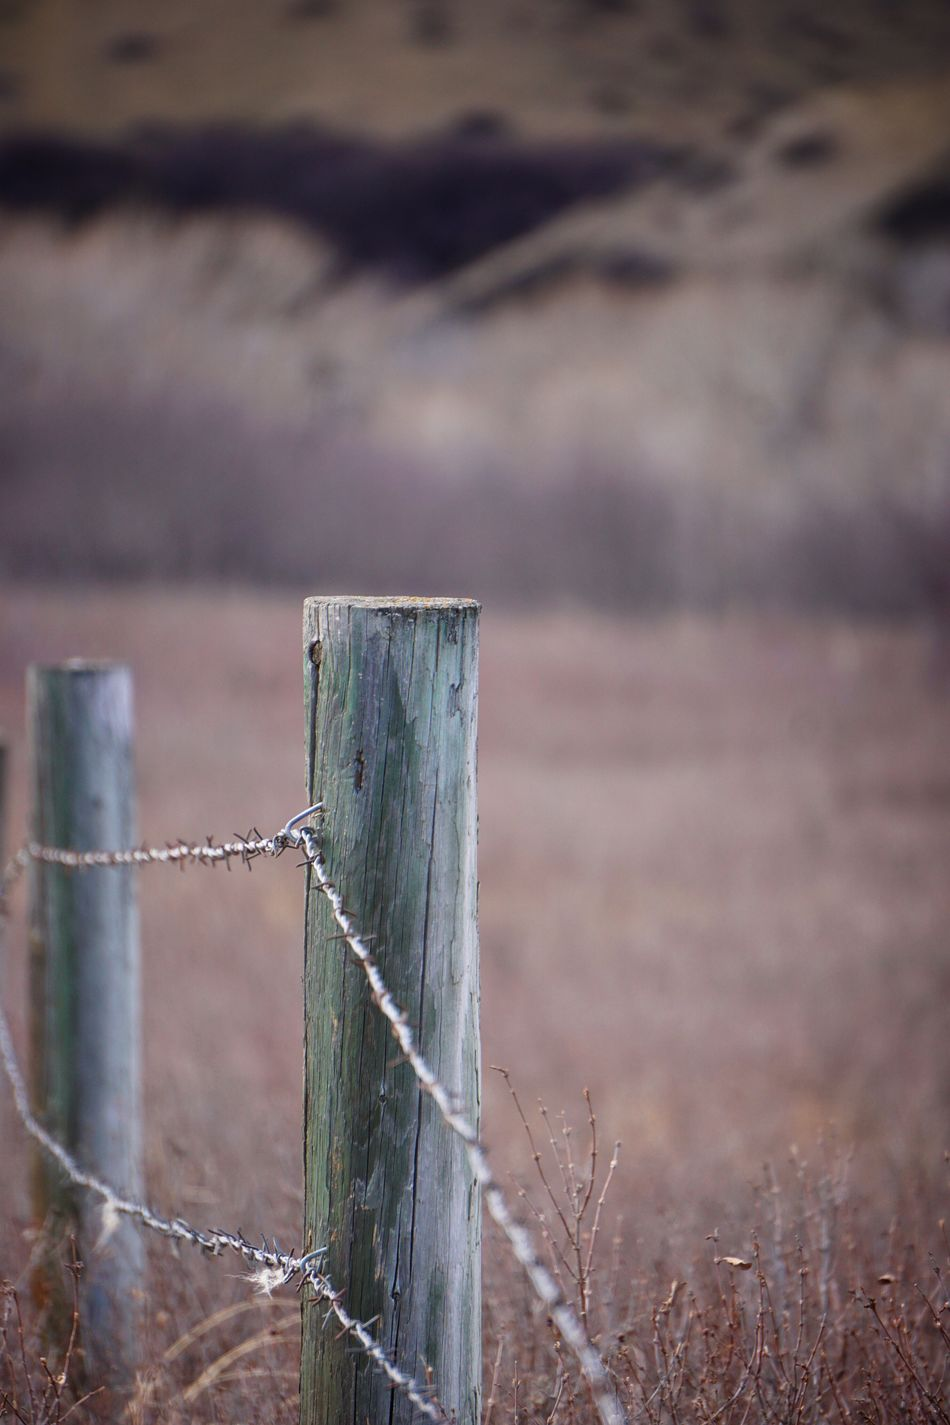 Nature Photography Nature Prairiescape Landscape_photography Alberta Canada Landscapes With WhiteWall EyeEm Best Edits EyeEm Best Shots Eyemphotography From Mypointofview Check This Out Prairie Scenes Fencepost Fence Posts With Barbed Wire